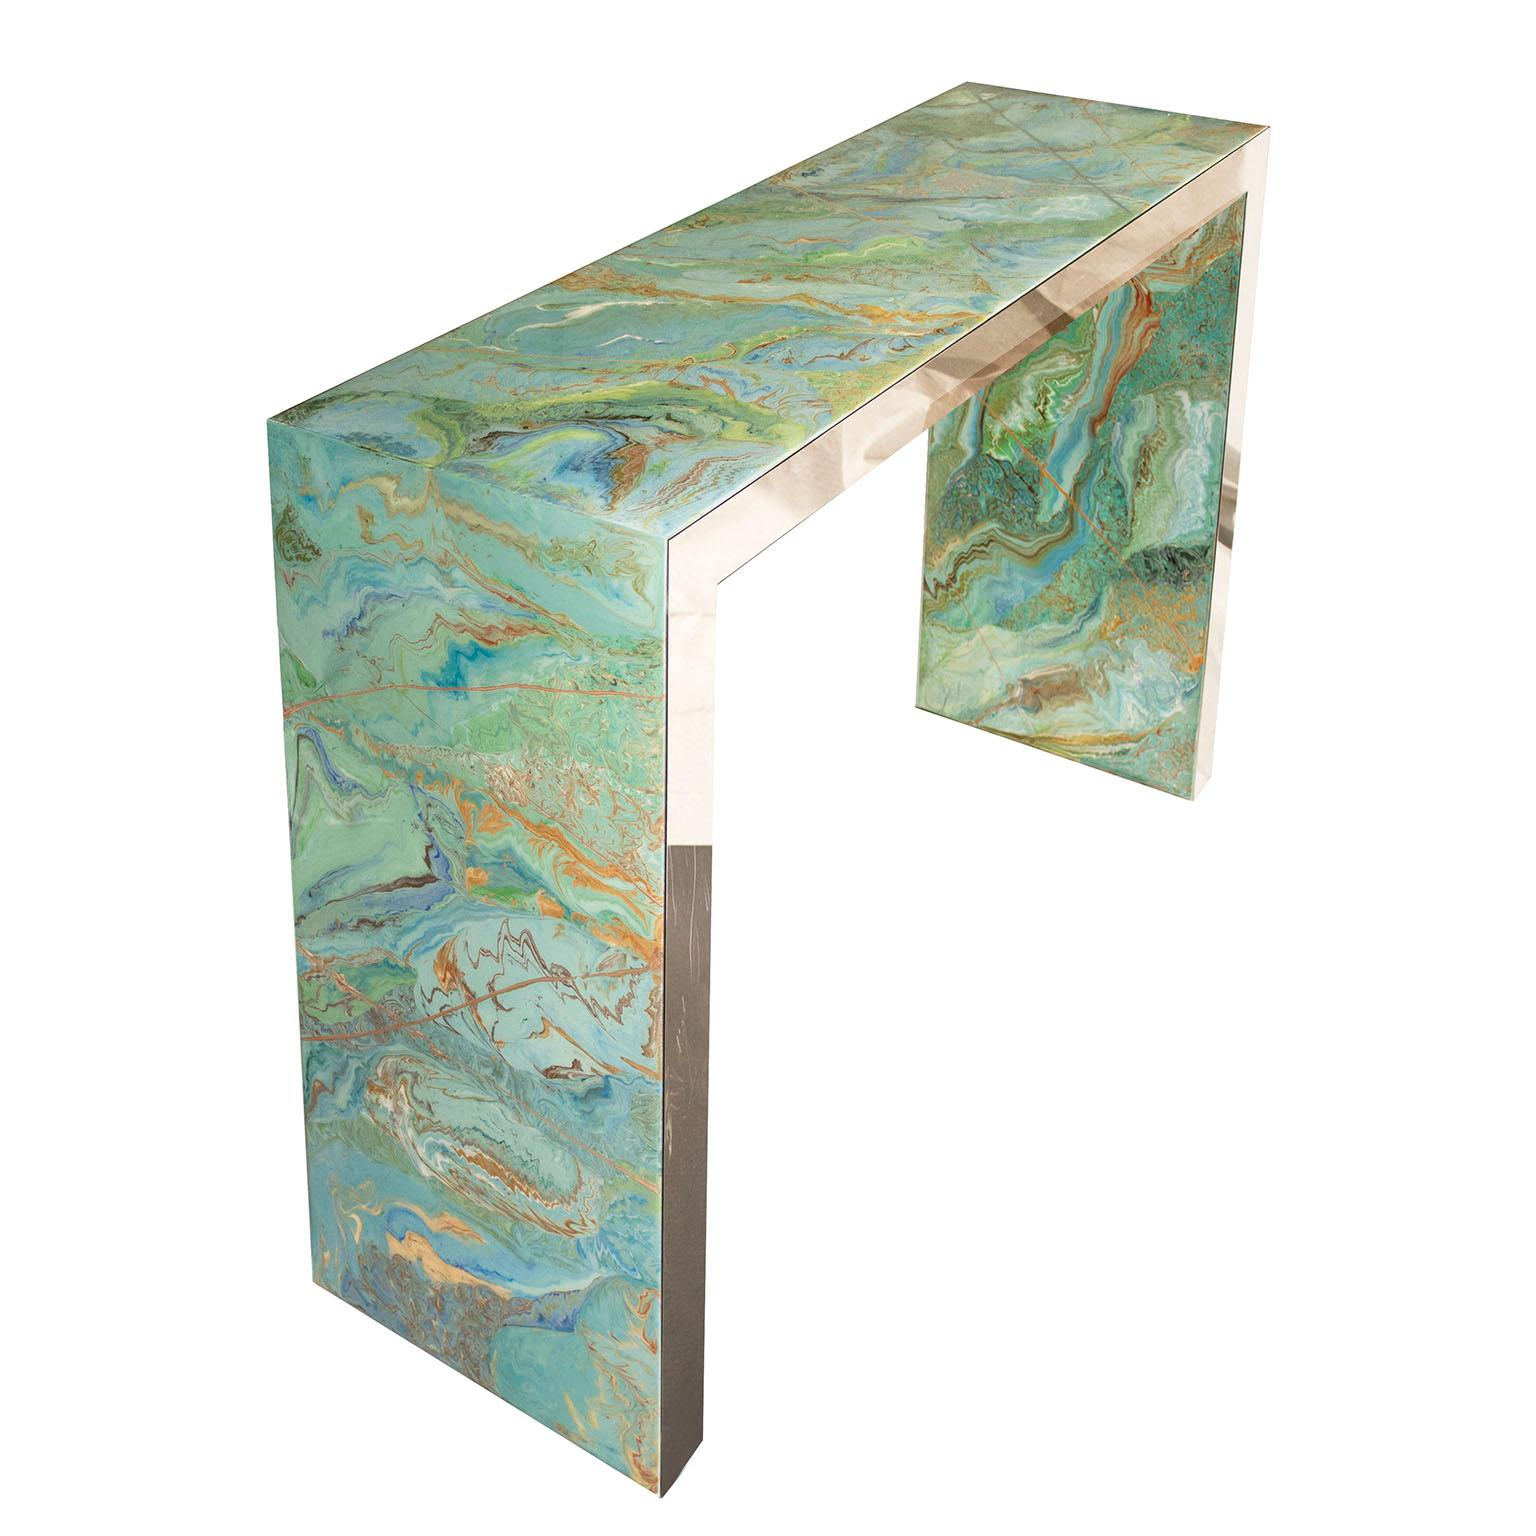 Modern Console Table Marbled Green Scagliola art Decoration handmade Steel Frame